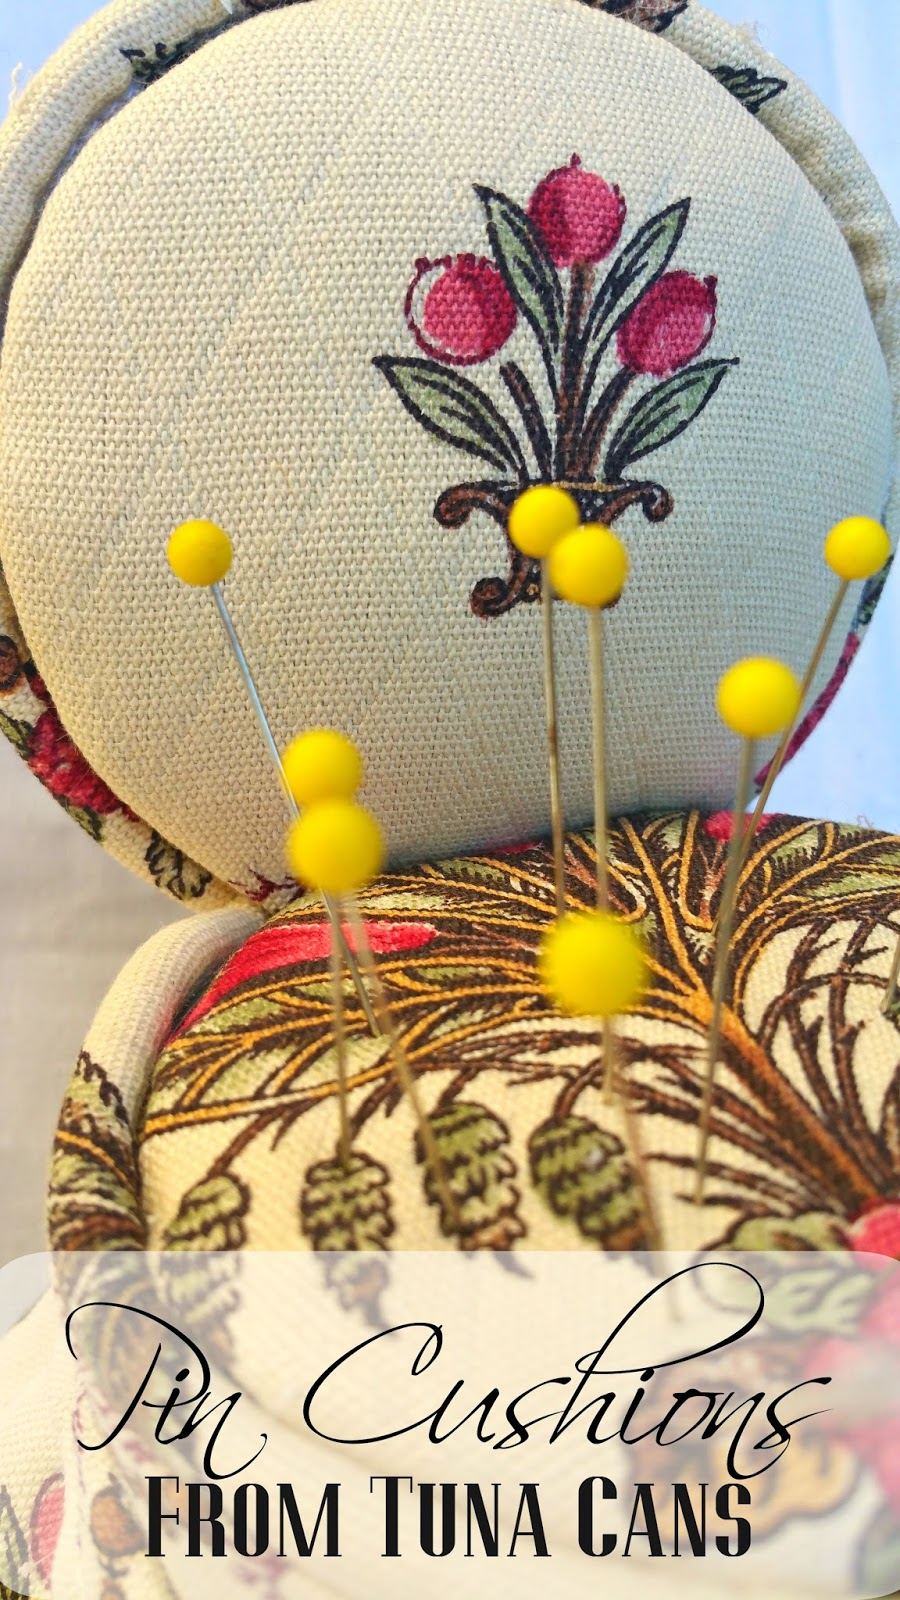 Pin Cushions from Tuna Cans | Redo It Yourself